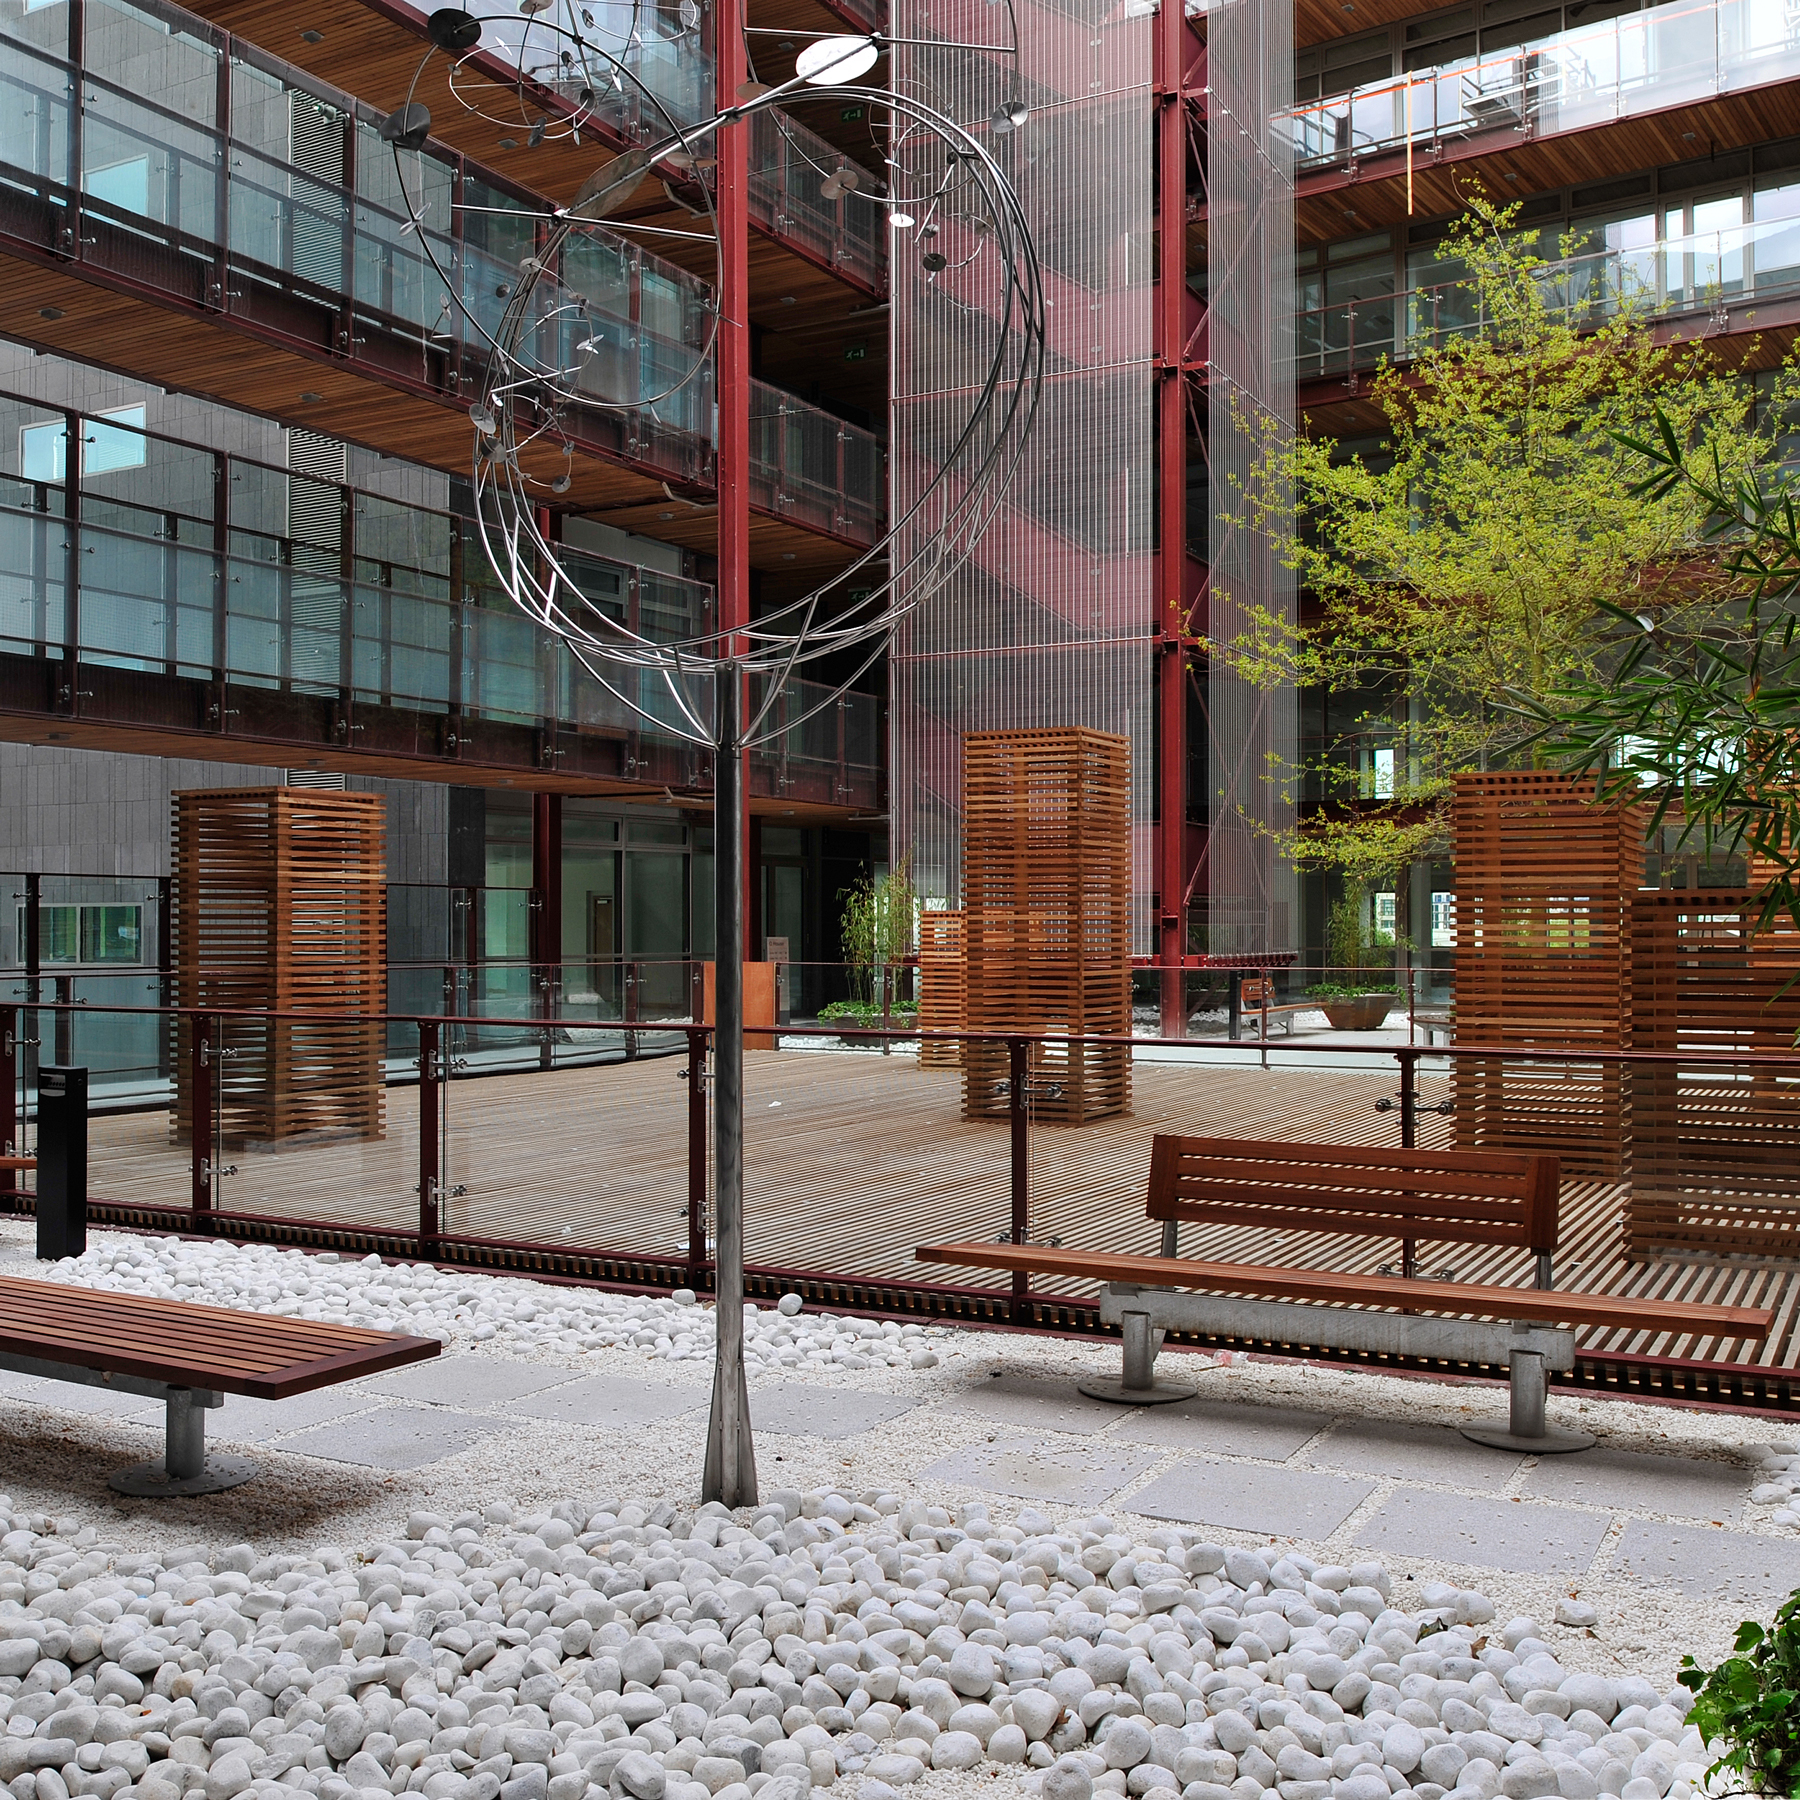 Sustainable and Inspiring - We are dedicated to creating sustainable high-quality buildings in London and in Dublin that will prove to be inspiring places for people to work and live.